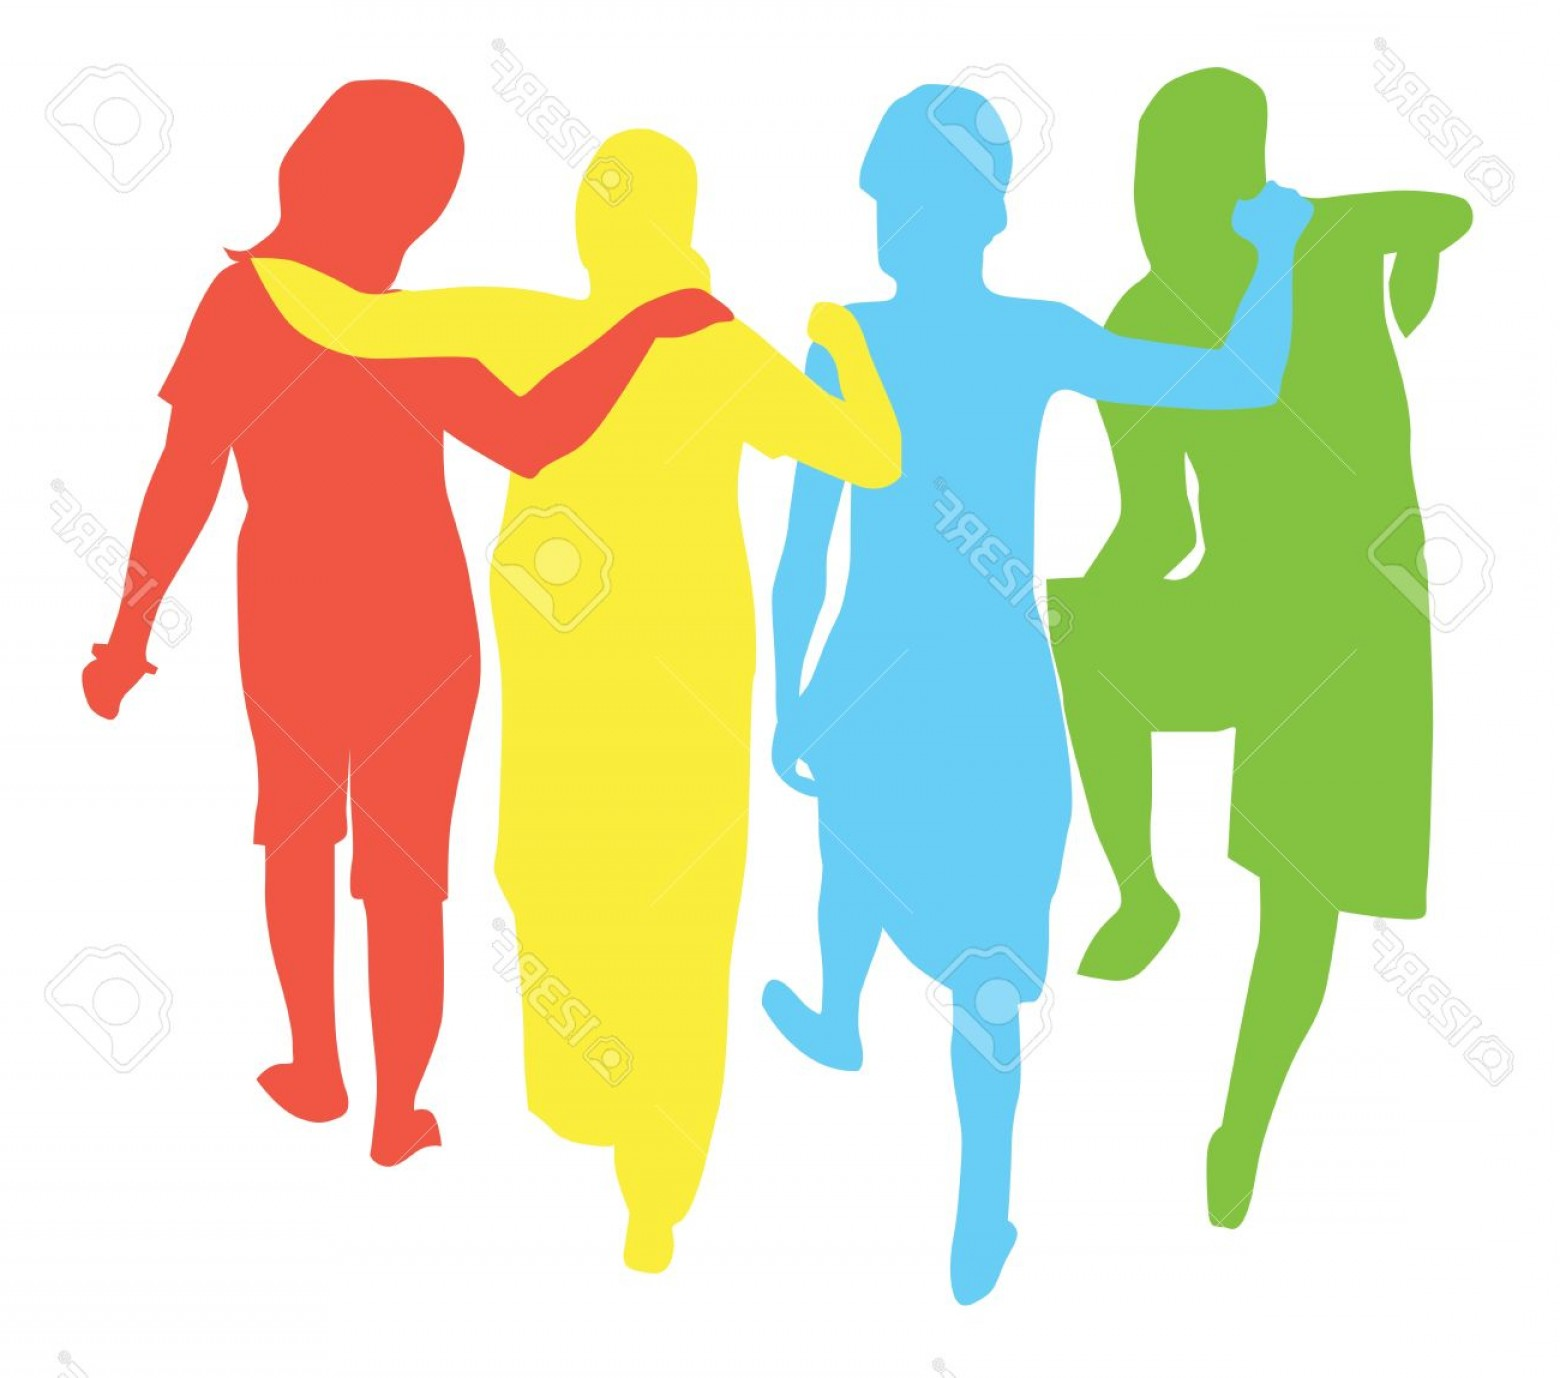 1560x1378 Women Group People Silhouette Vector Shopatcloth